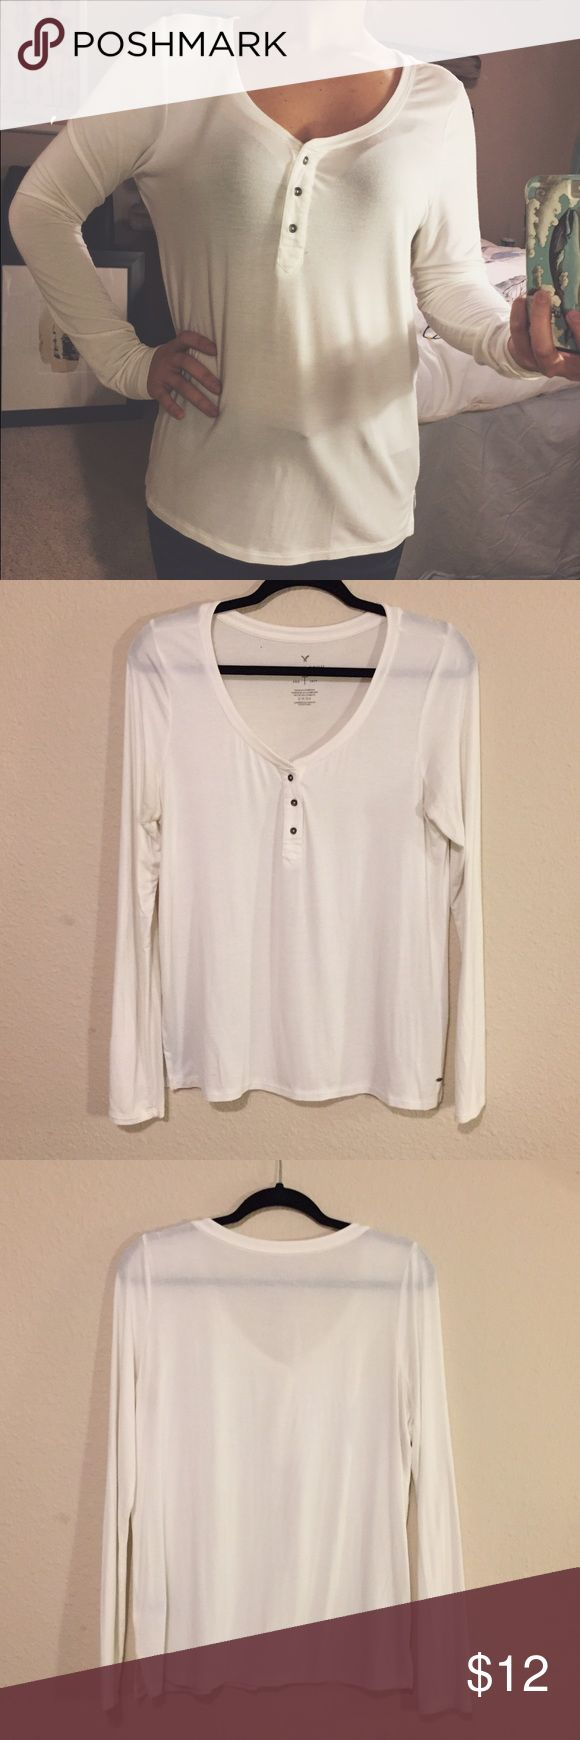 American Eagle soft and sexy Henley AE Outfitters soft and sexy long sleeve white Henley. Worn once or twice, super comfy and perfect with jeans or leggings. Tiny stain near hem, barely noticeable. Price reflects condition American Eagle Outfitters Tops Tees - Long Sleeve